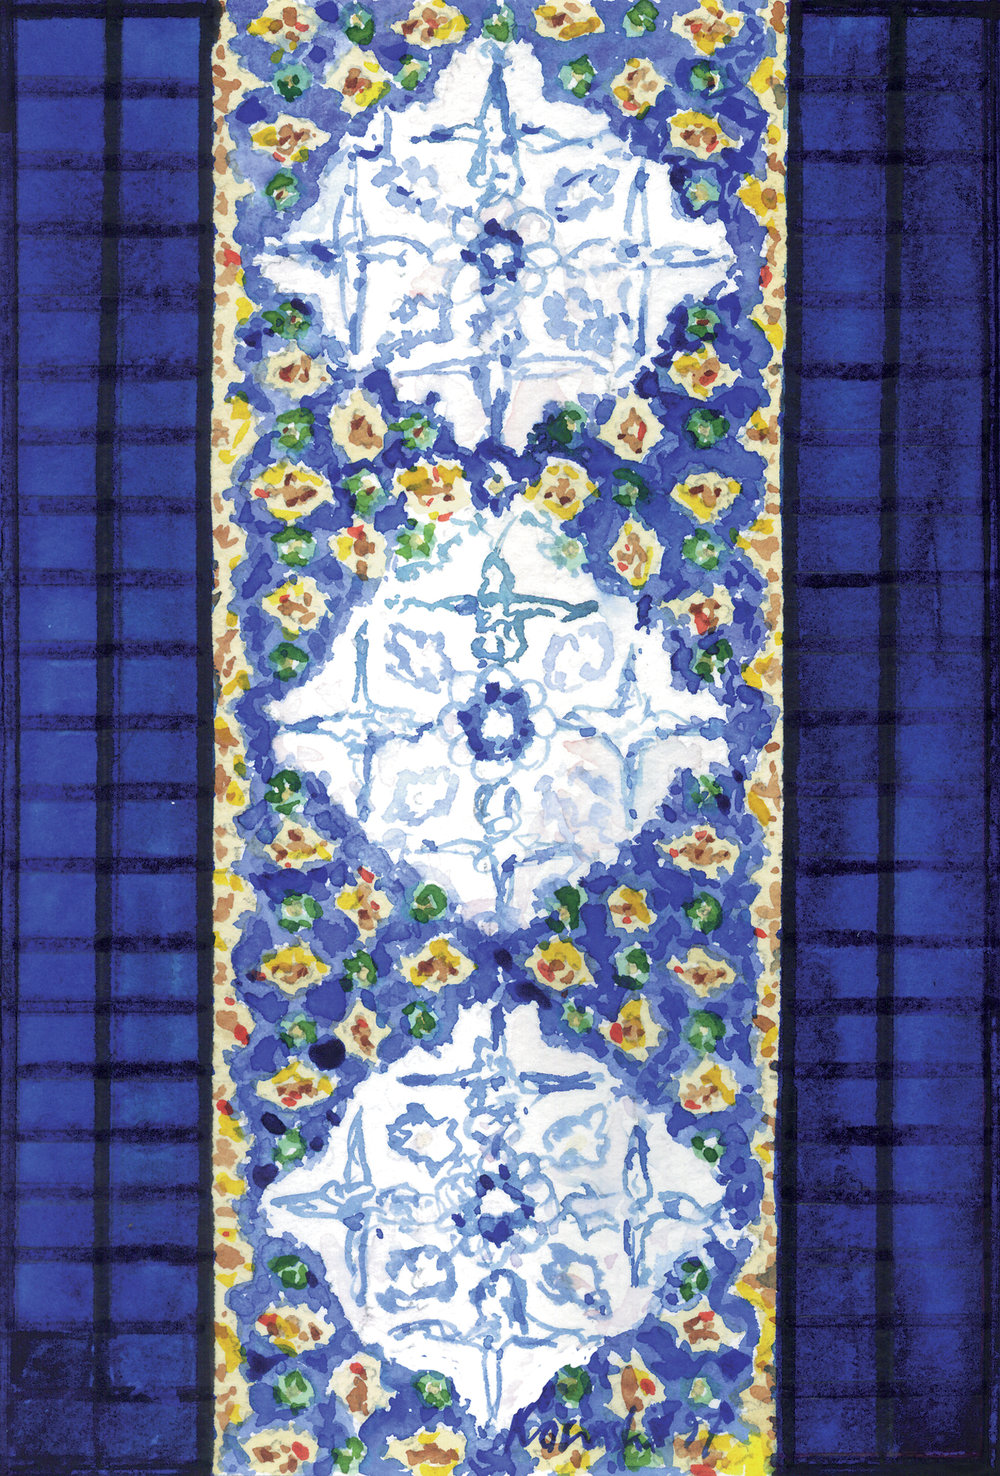 Tiles from Dome of the Rock